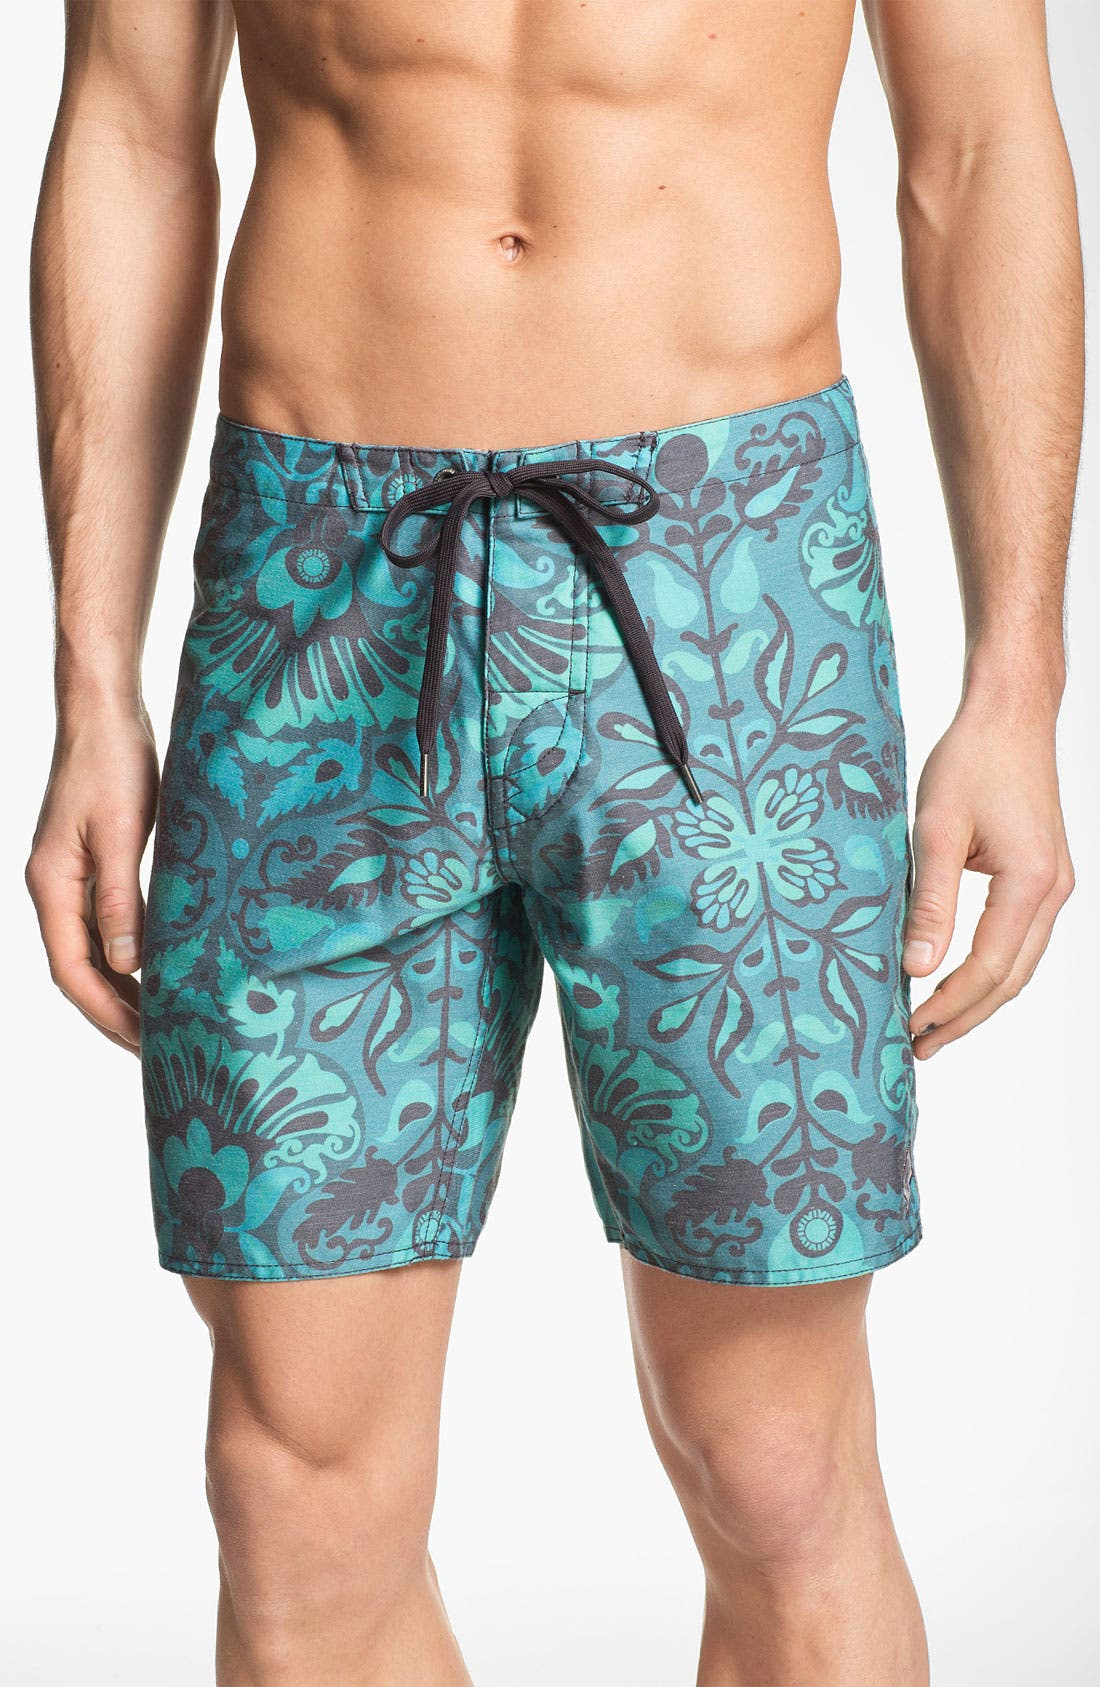 'NPJ 2' Board Shorts,                             Main thumbnail 1, color,                             Blue